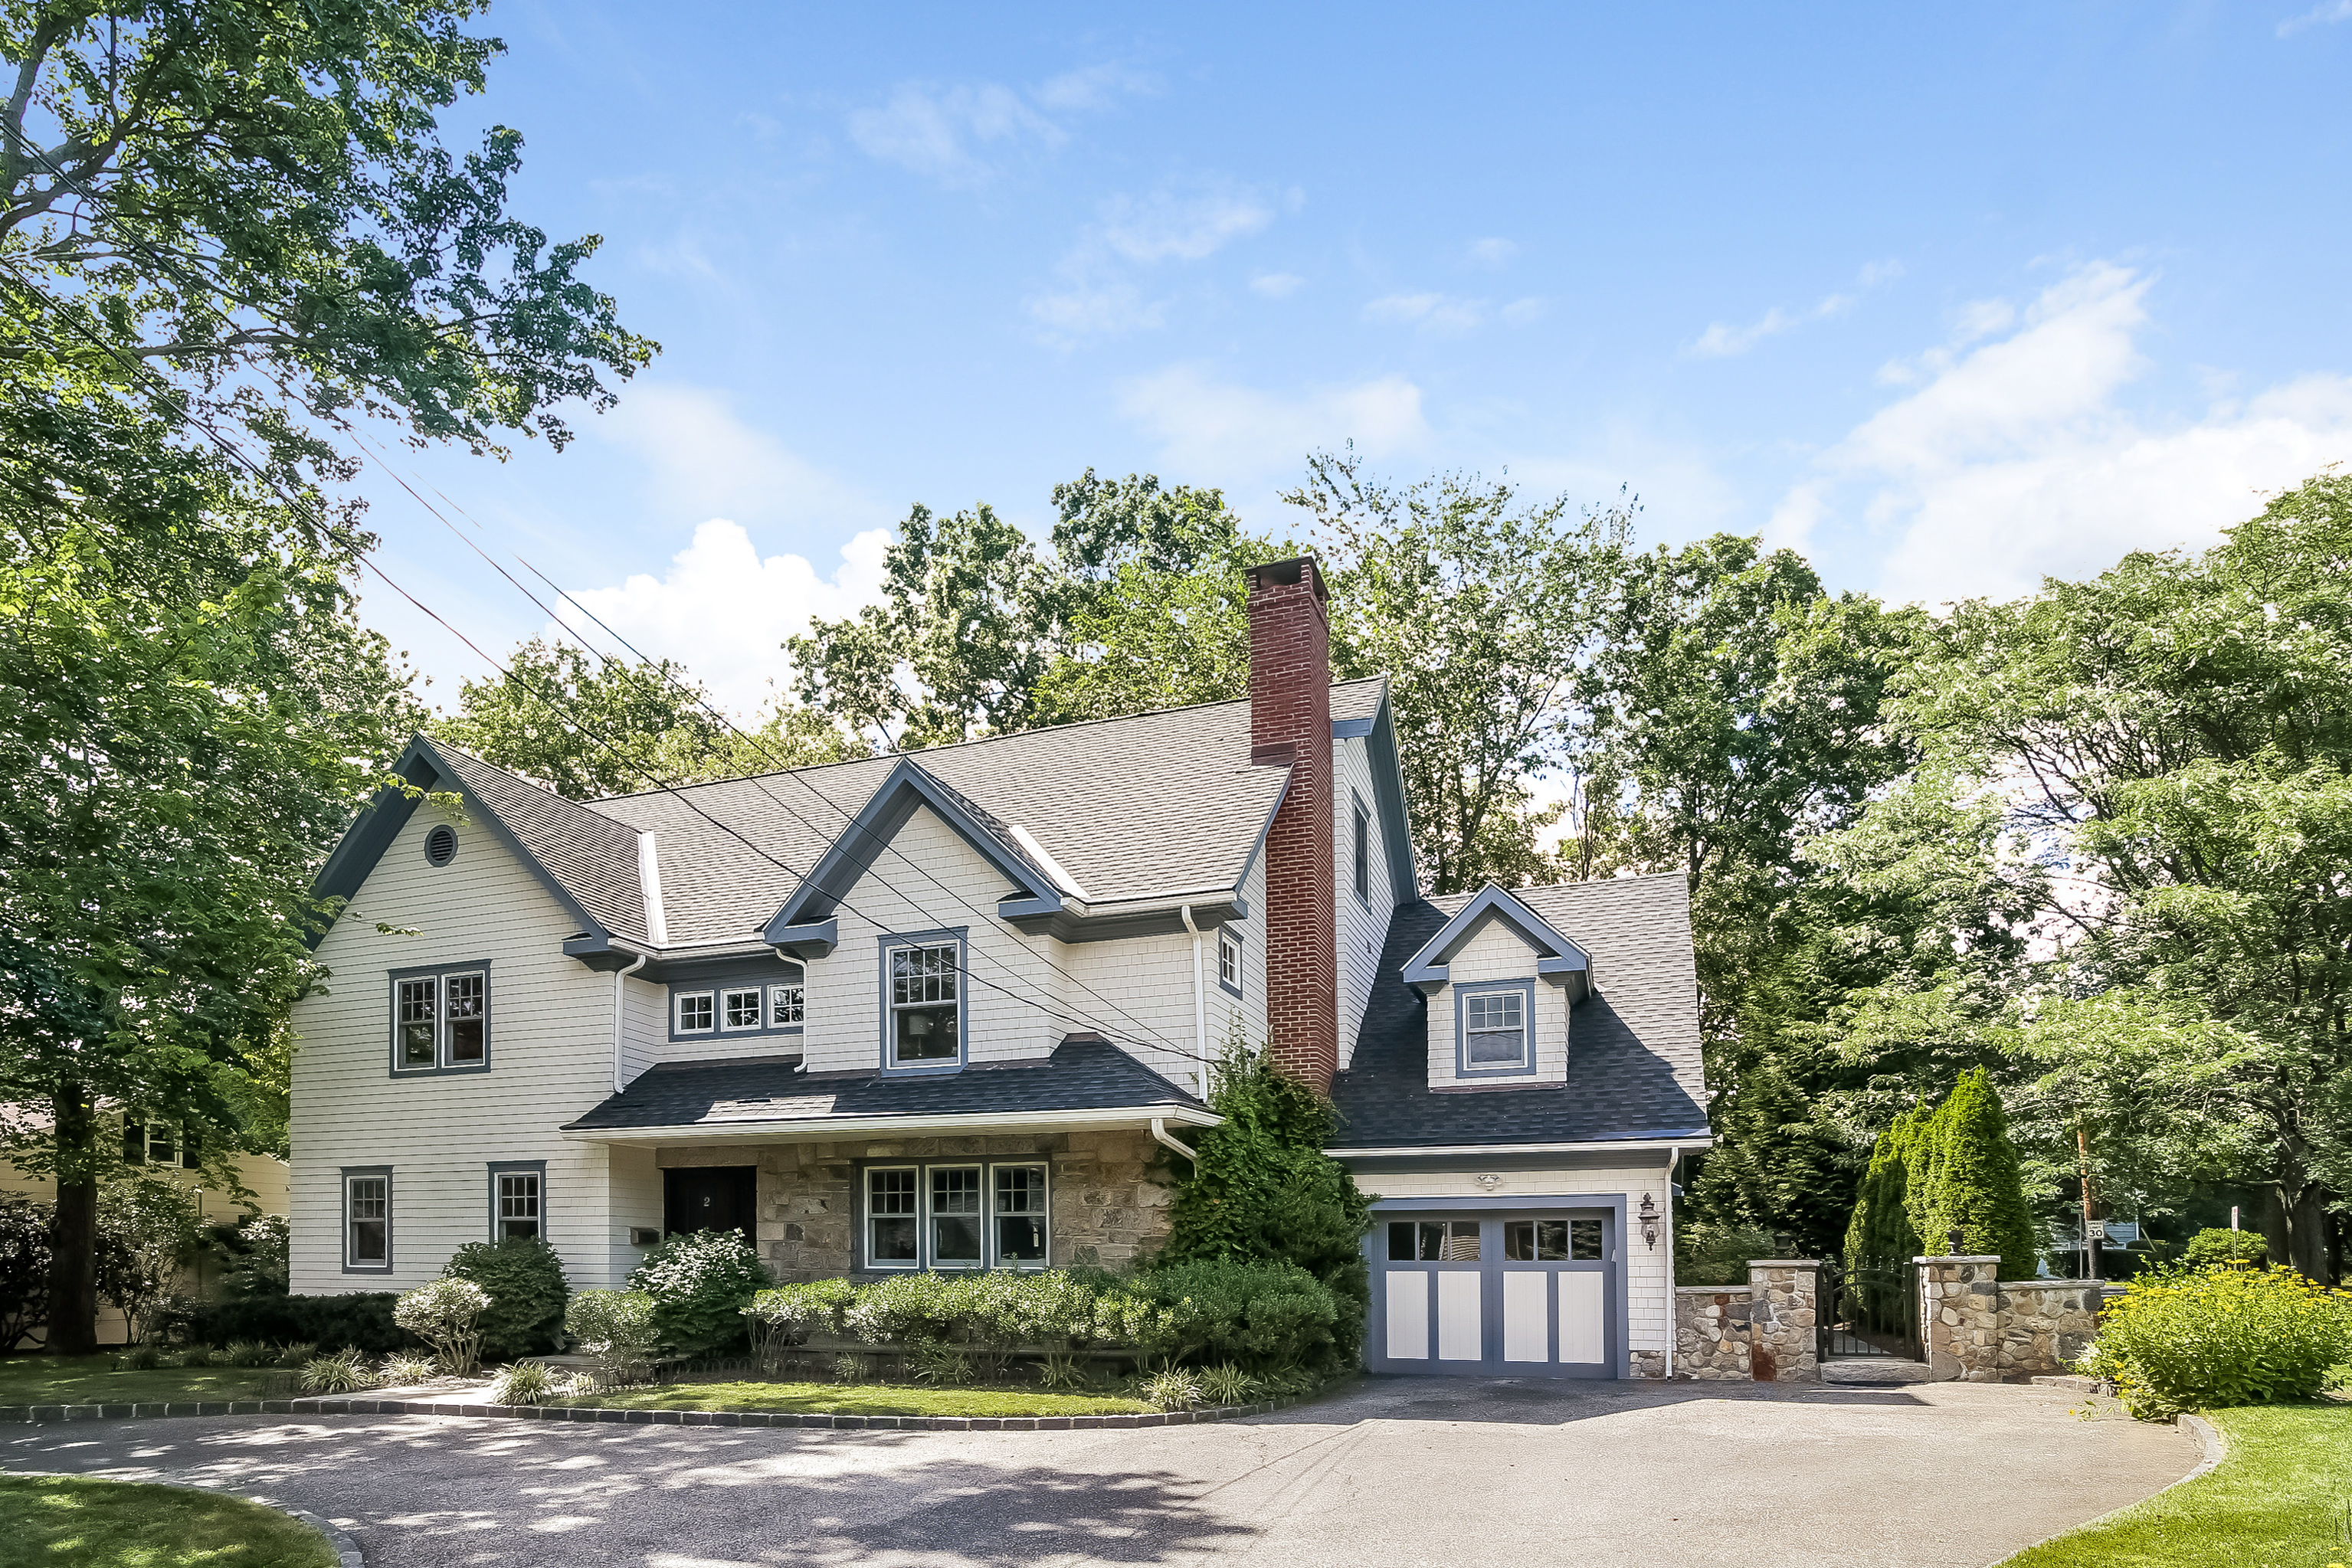 Single Family Home for Sale at 2 White Birch Drive Rye, New York, 10580 United States